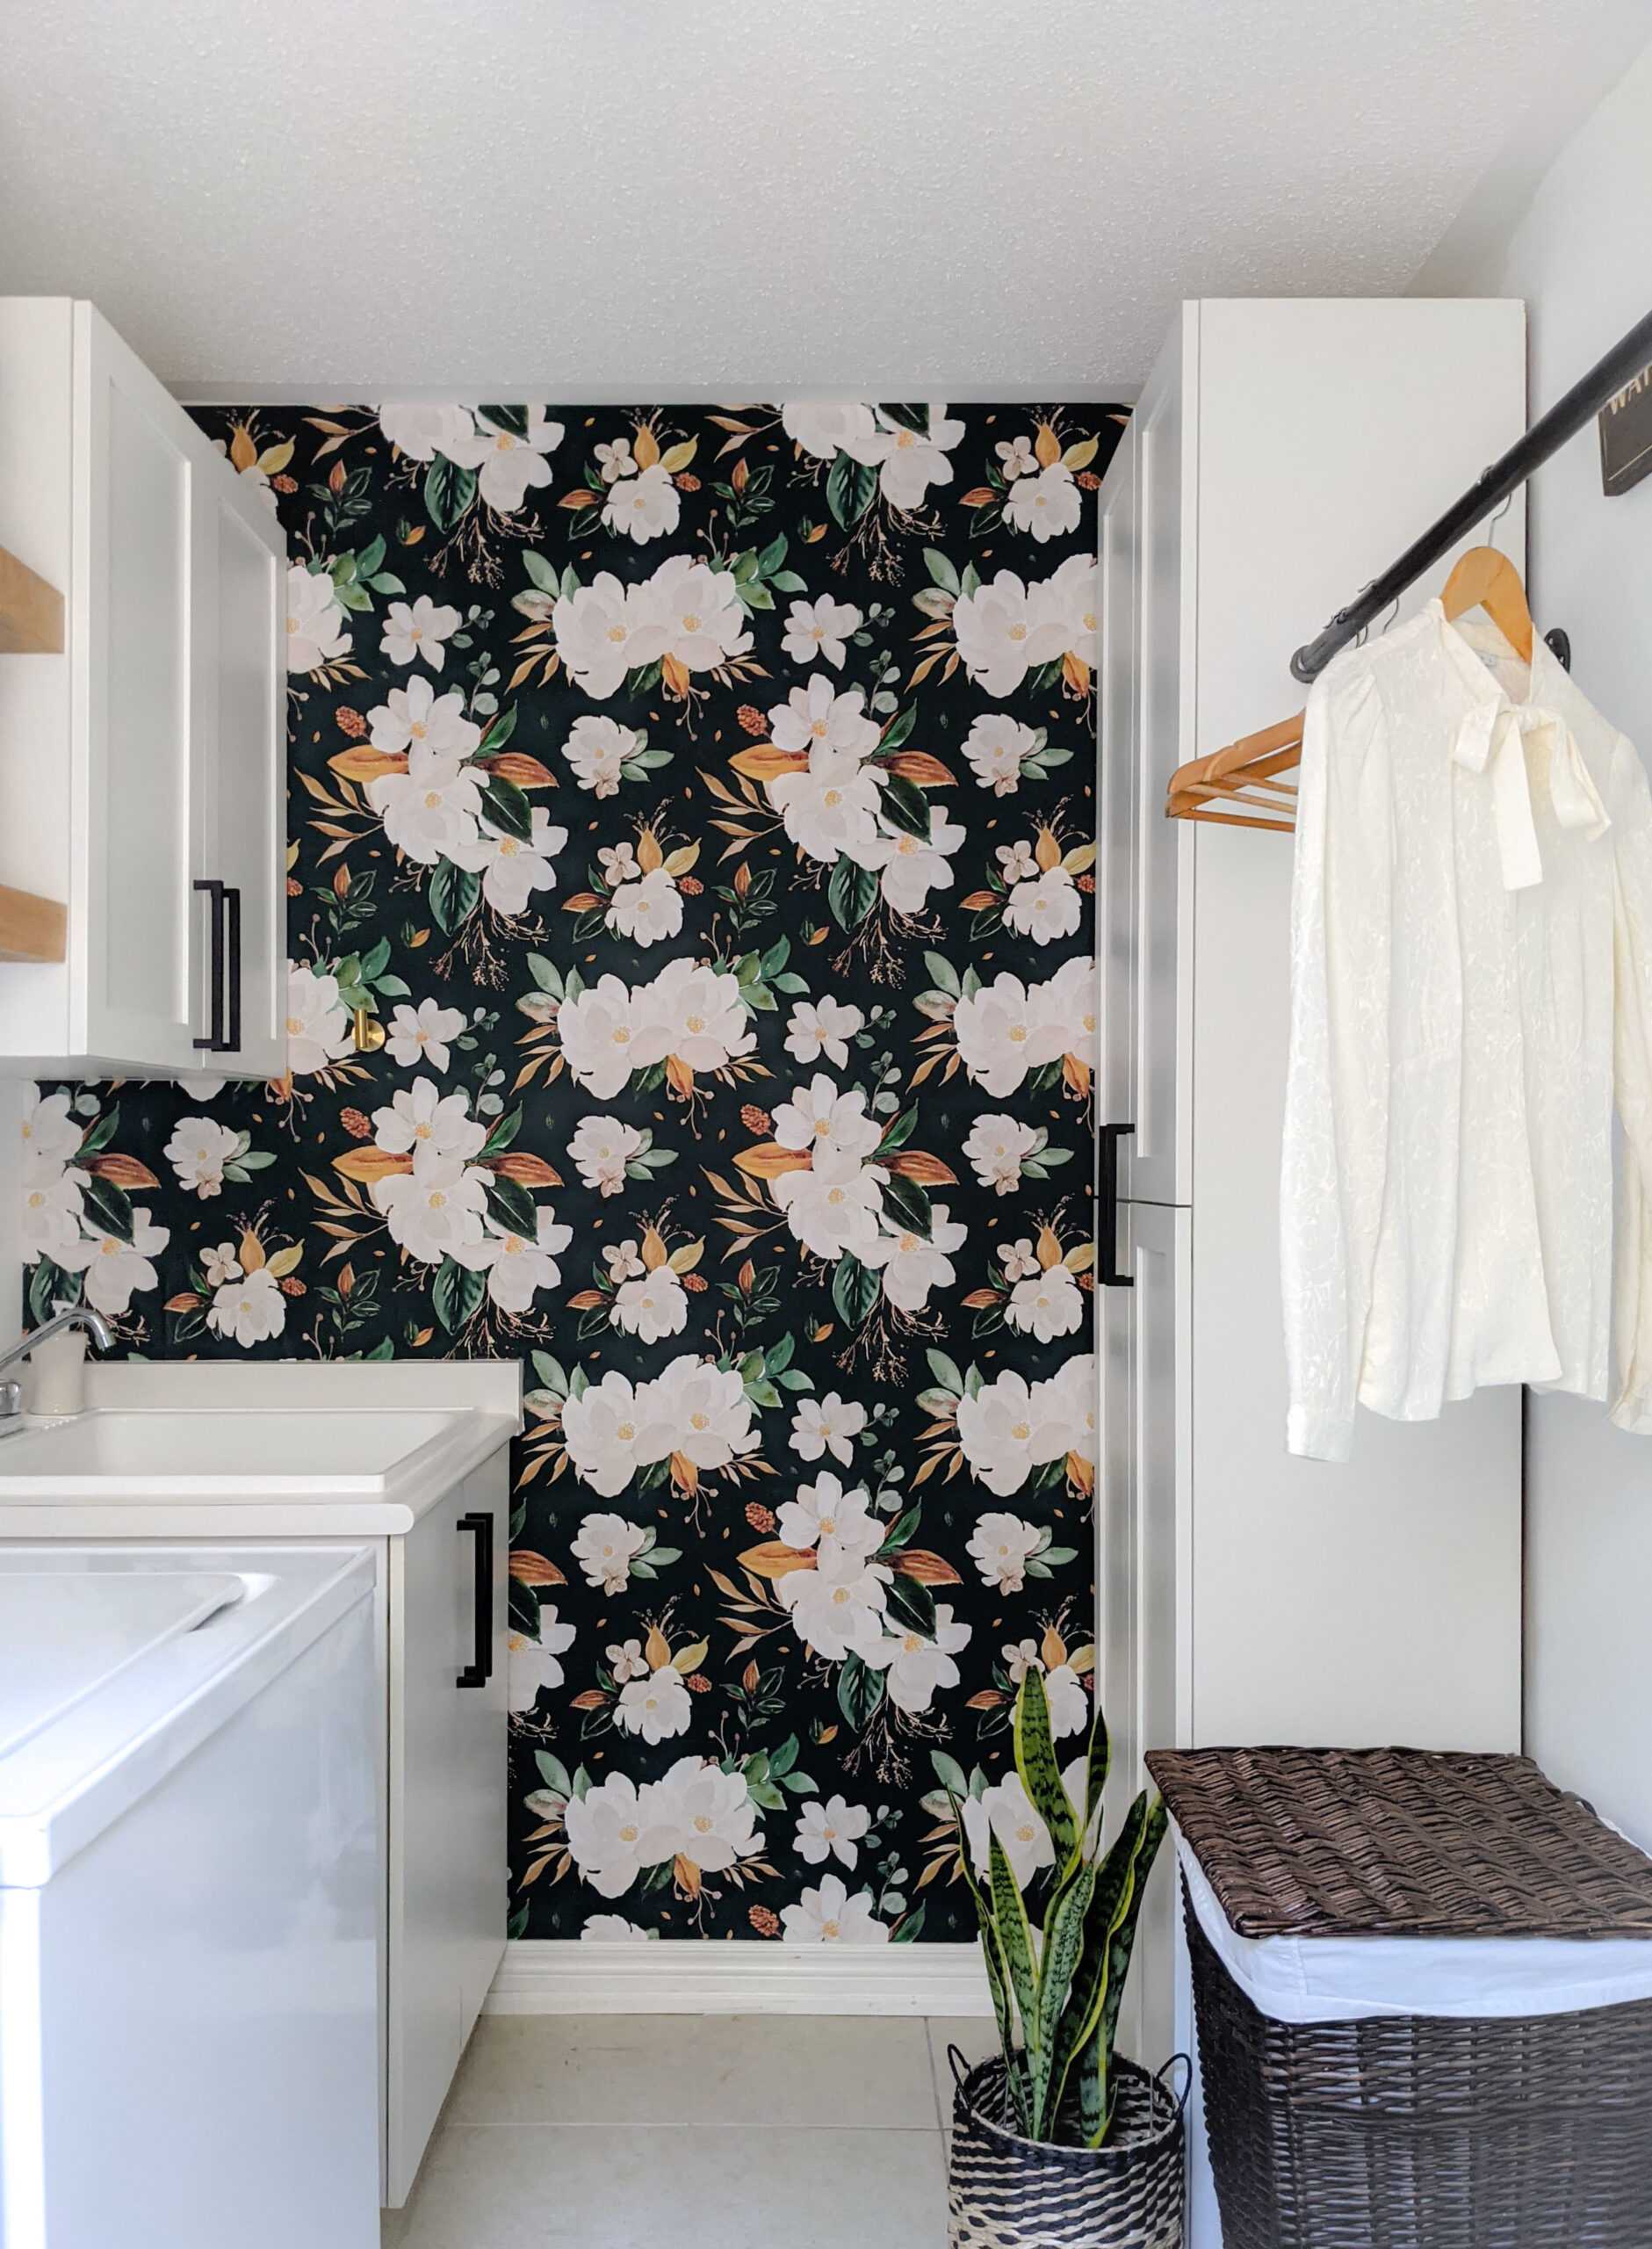 A laundry room with a dark floral wallpaper